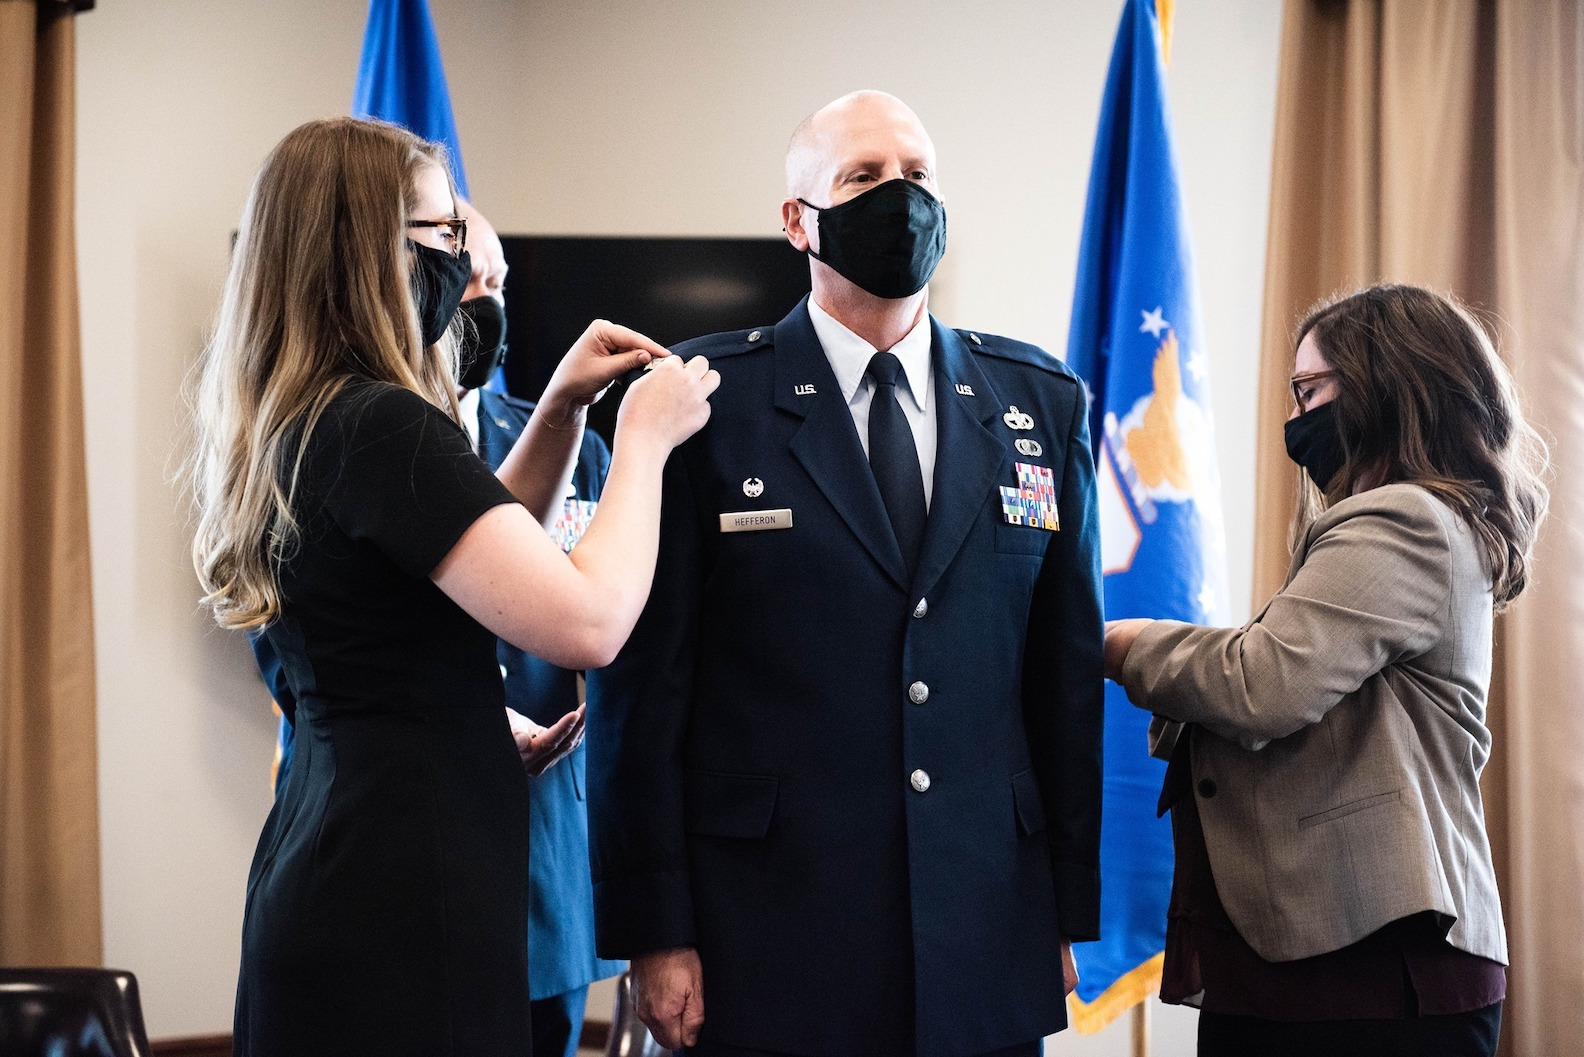 New York Air National Guard Col. Steven M. Hefferon has his new rank pinned on by his daughter, Jessica, and wife, Tobi, during ceremonies at Niagara Falls Air National Guard Base on Saturday. ( U.S. Air National Guard photo courtesy 107th Attack Wing)